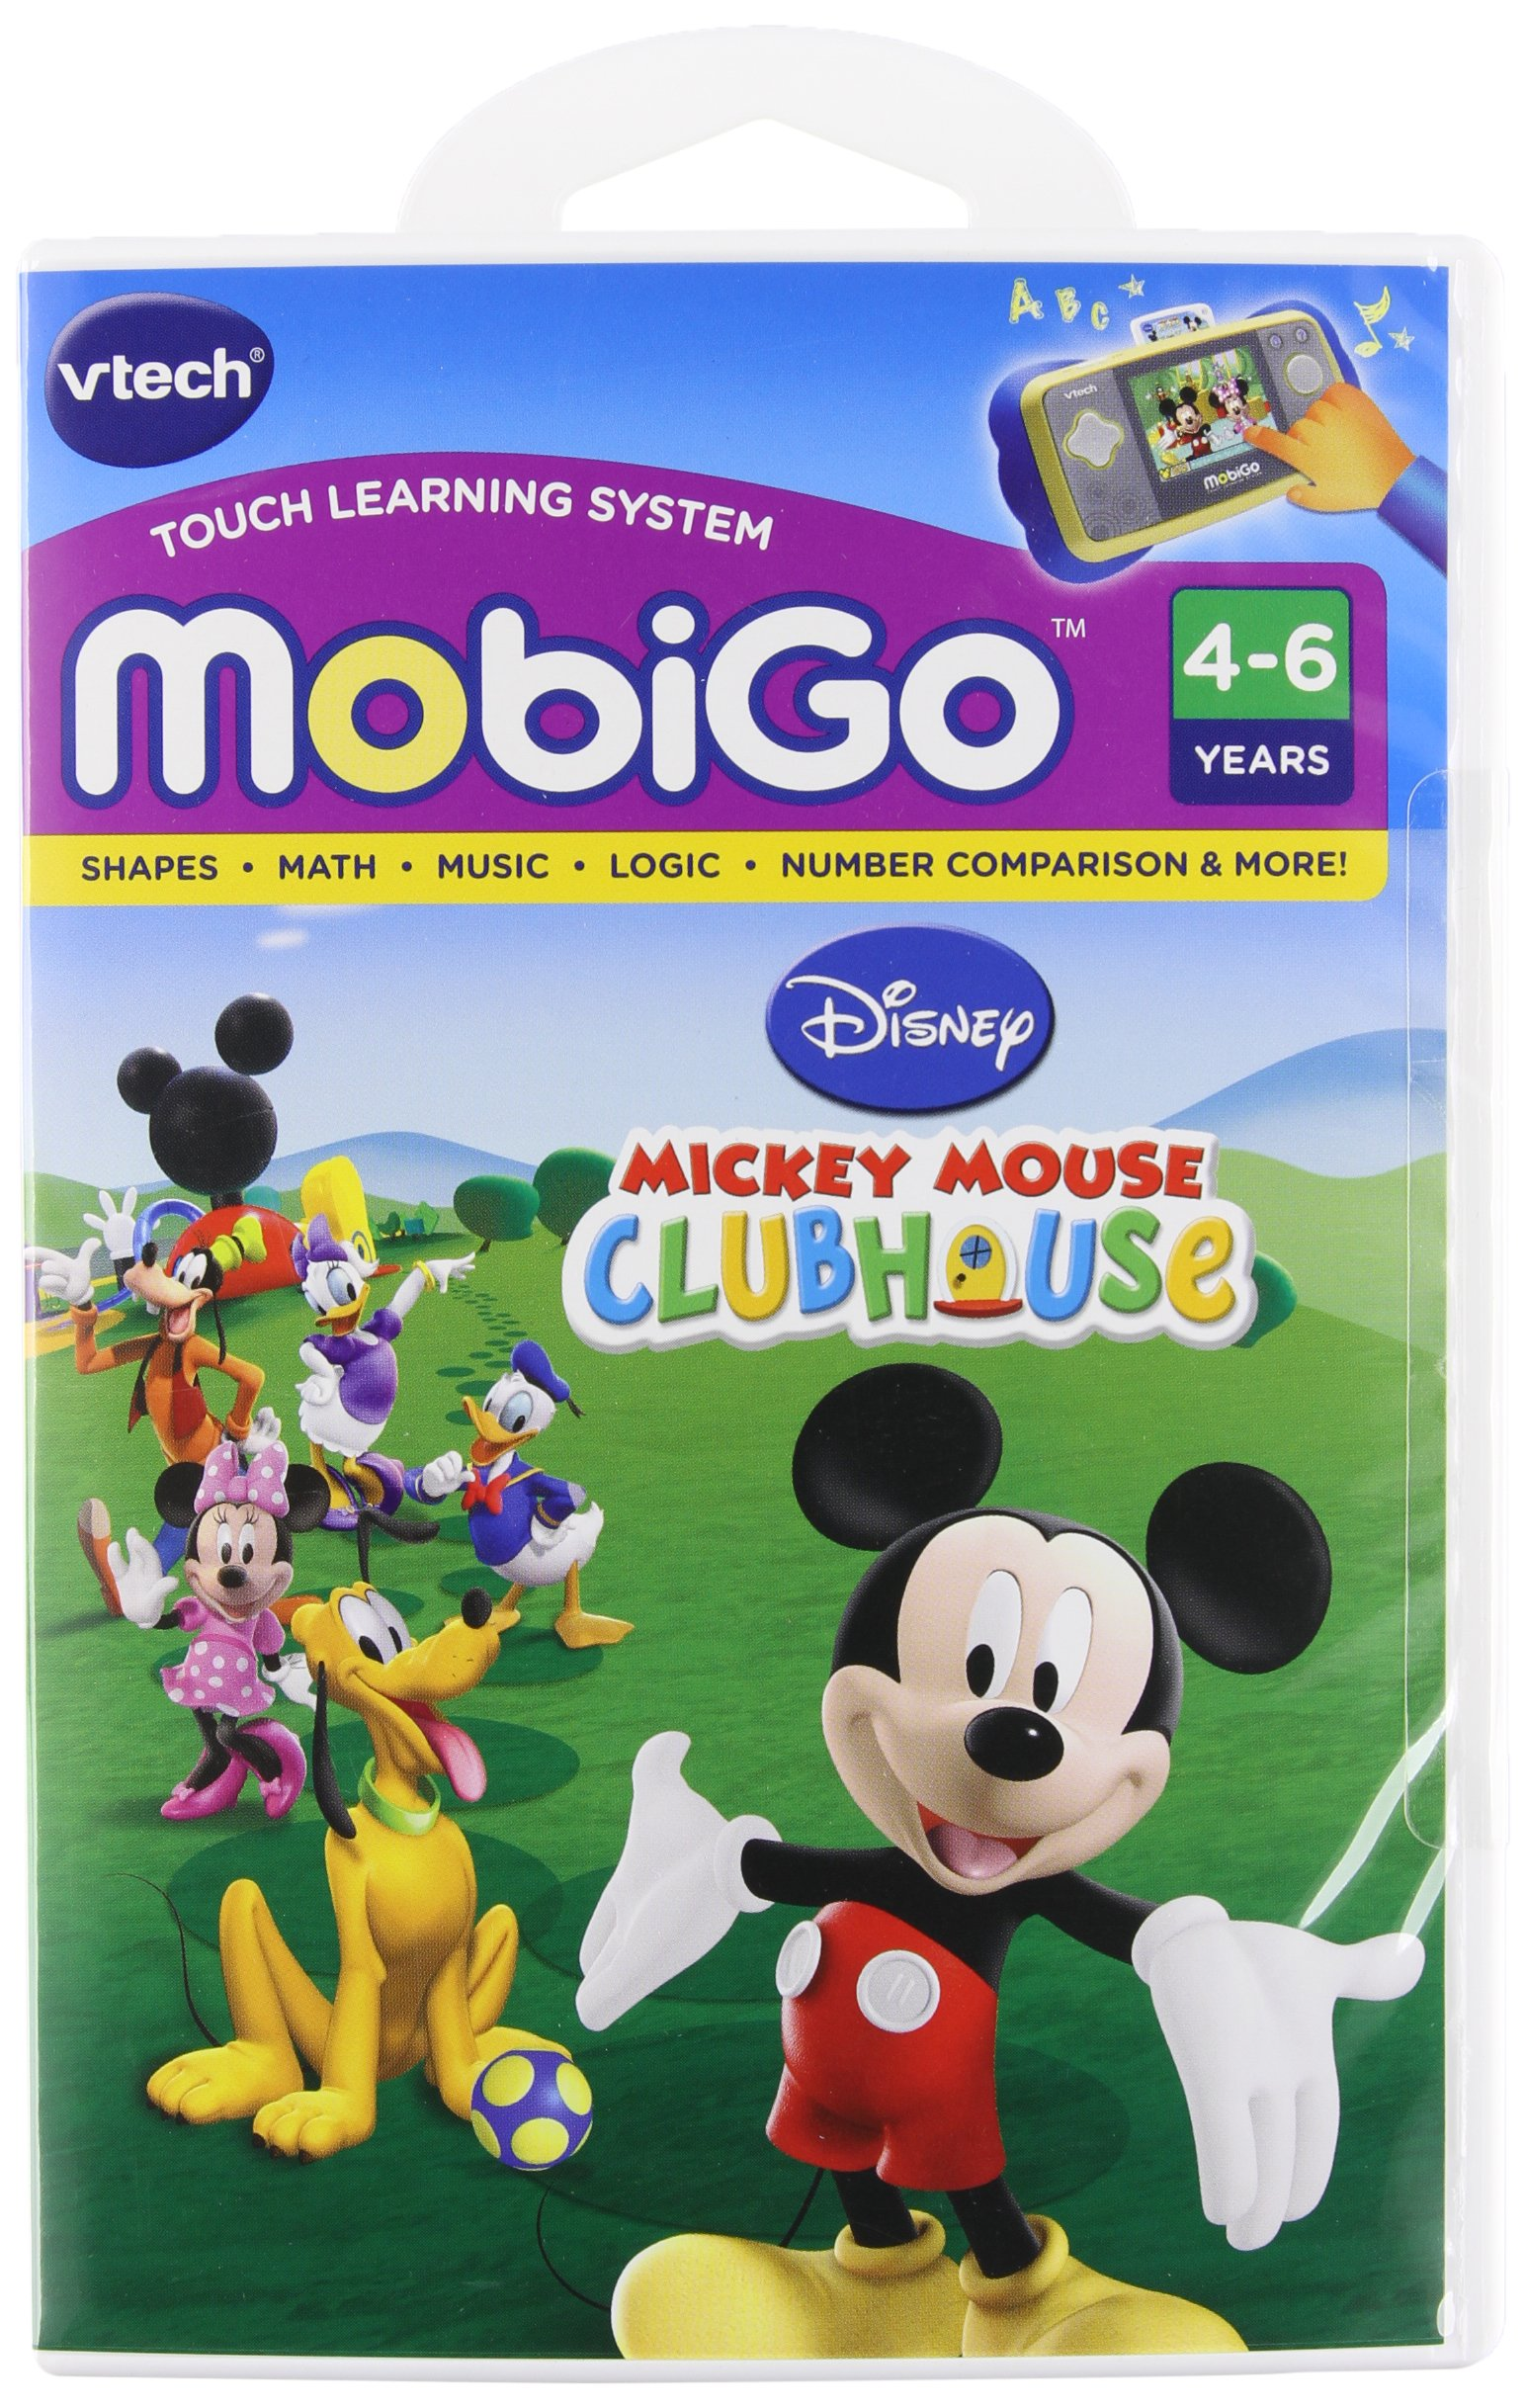 VTech - MobiGo Software - Mickey Mouse Clubhouse by VTech (Image #1)